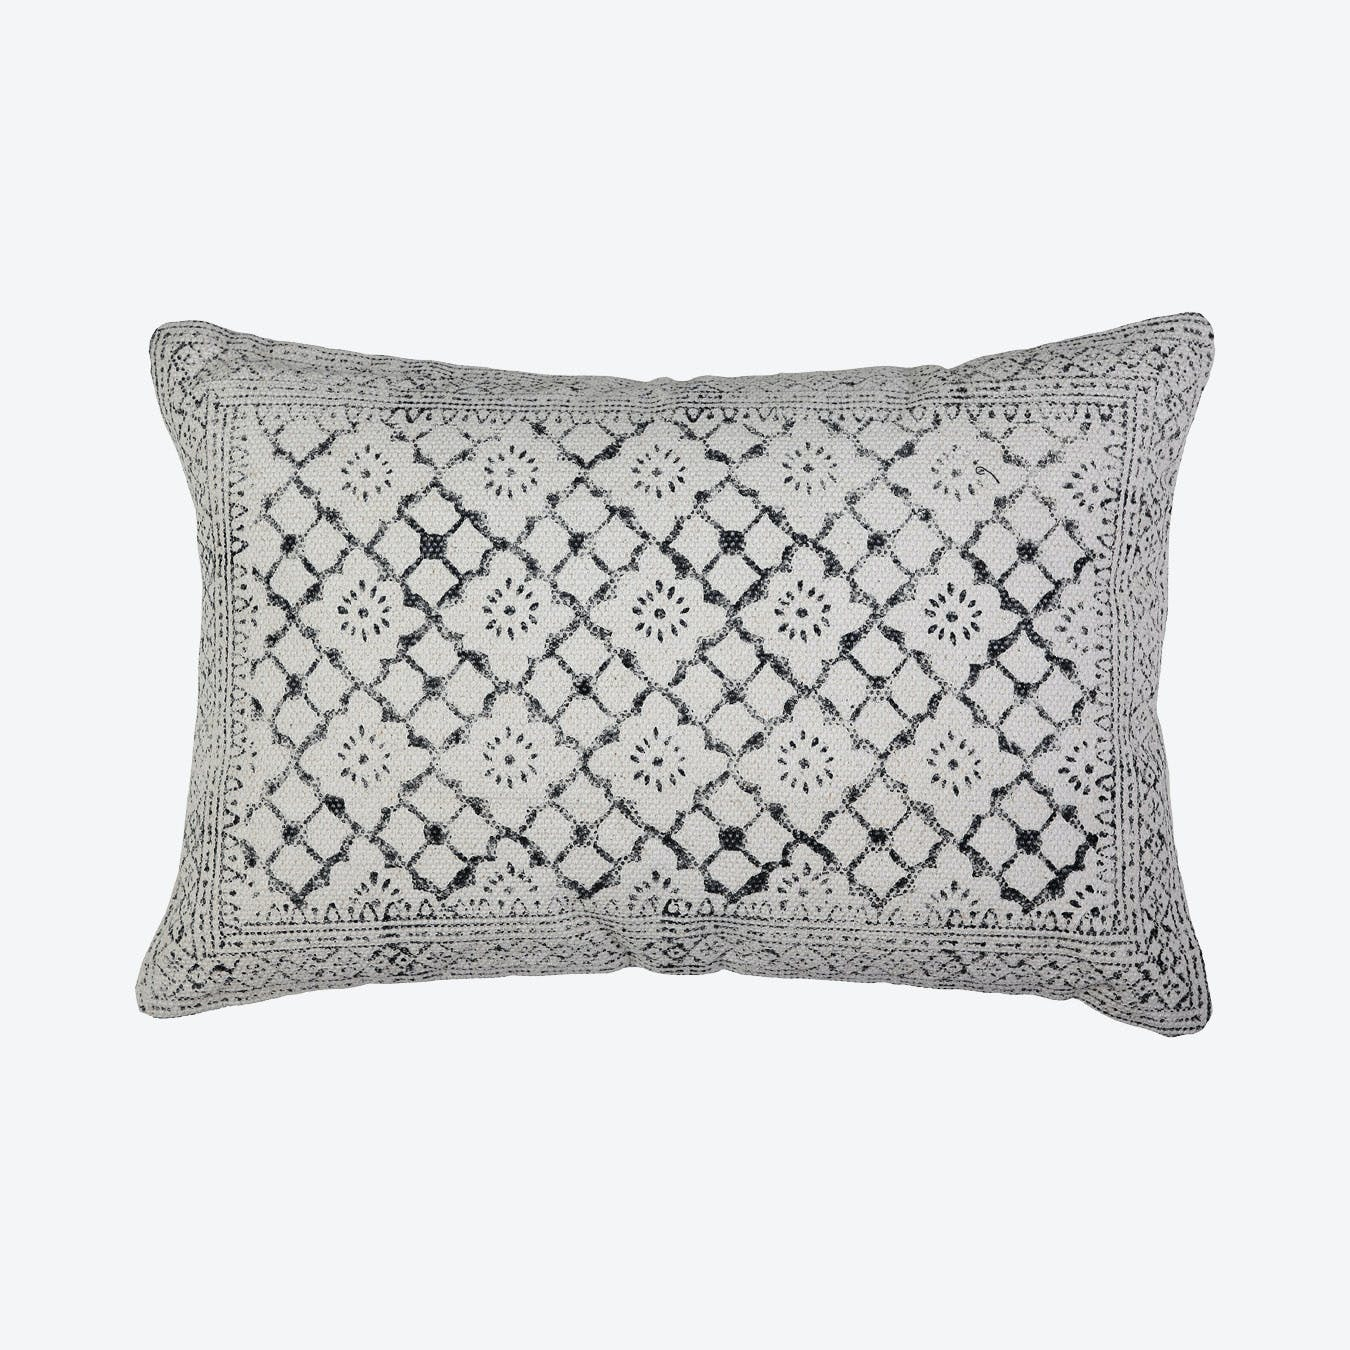 Hand Block Print Blanket Pillow